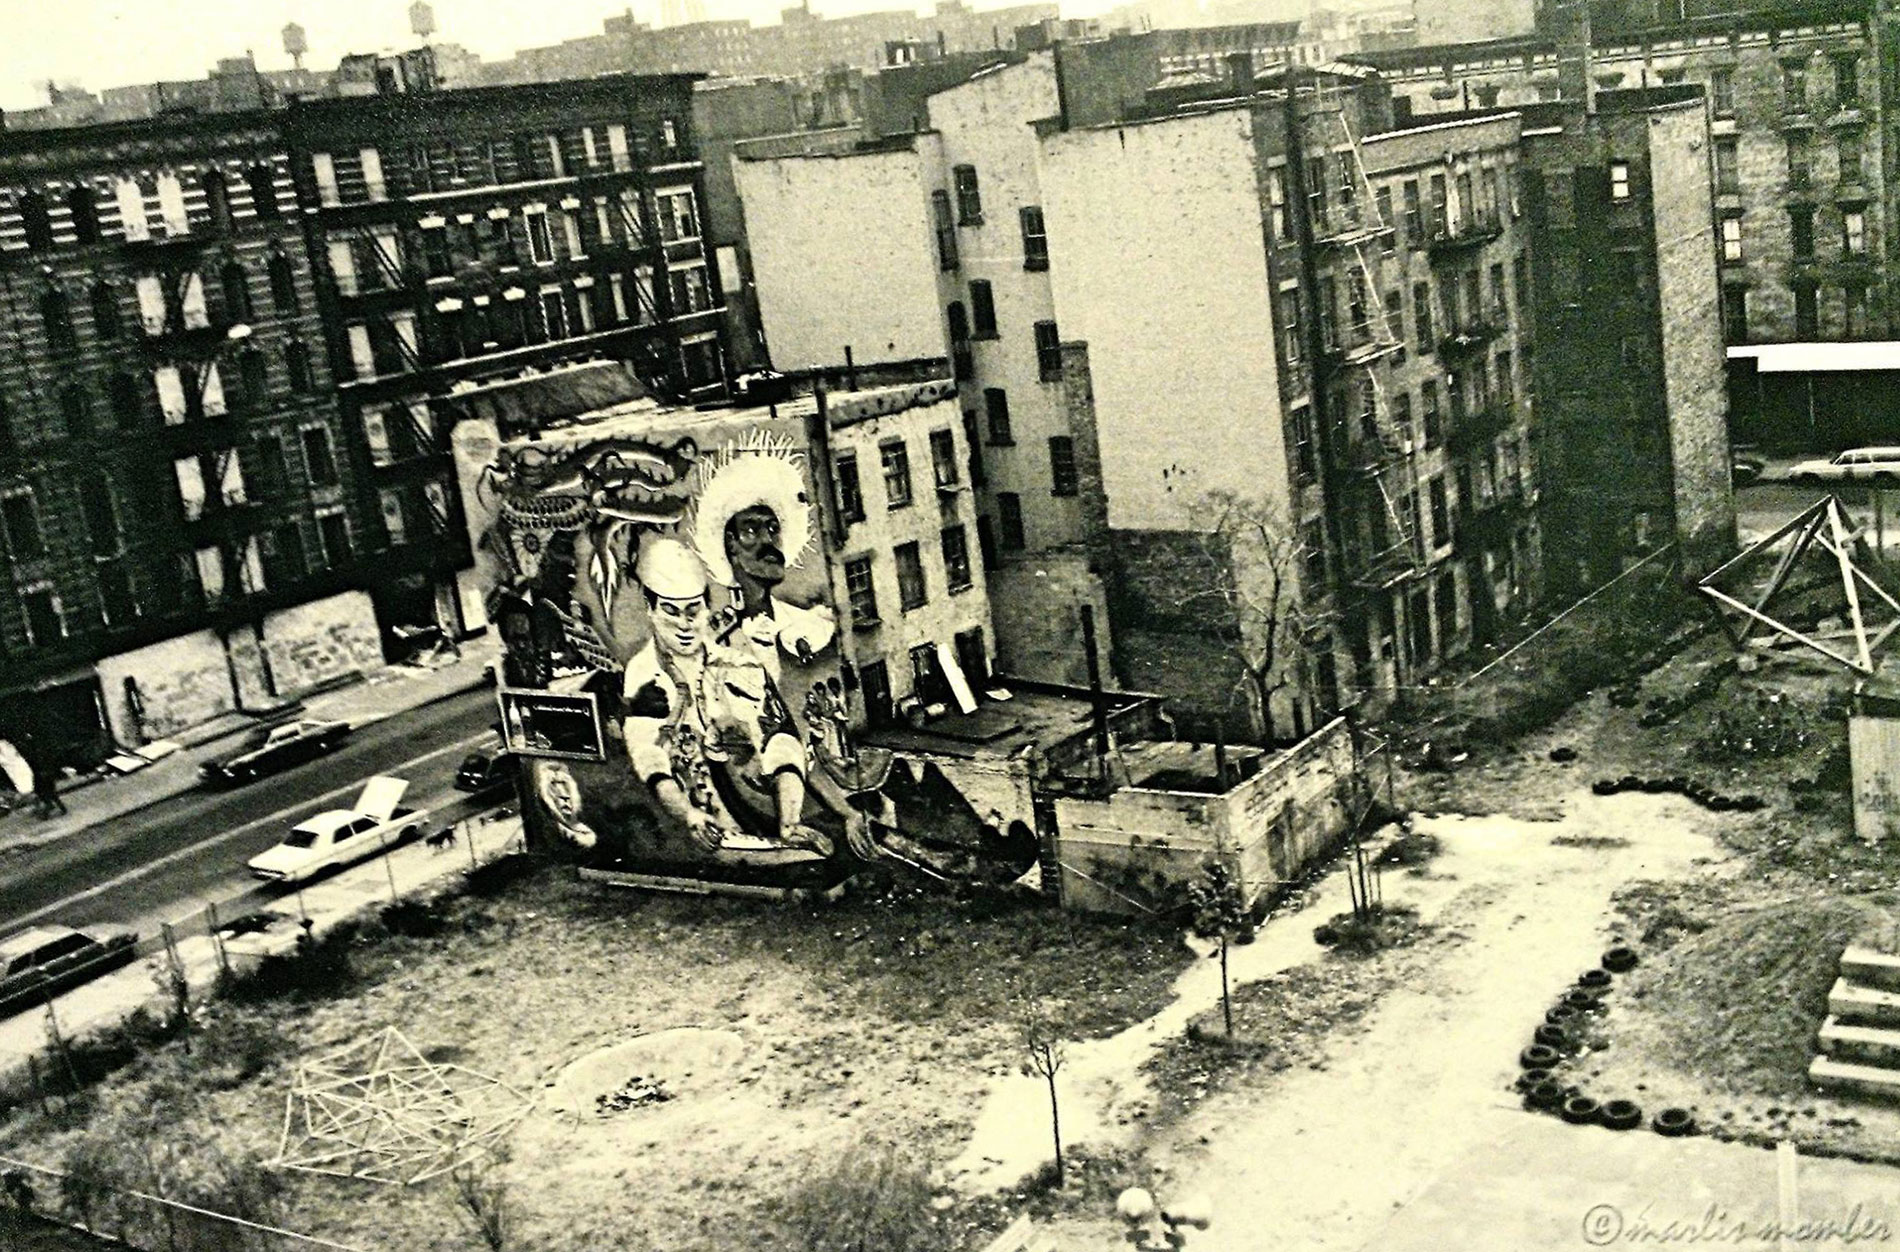 La Plaza Cultural, circa 1980, when Freddy Hernandez's 1977  La Plaza Cultural Mural  overlooked the community garden. Due to wall leaks, the mural was tarred over, replaced in 1985 by La Lucha's collective mural.   Photo © Marlis Momber